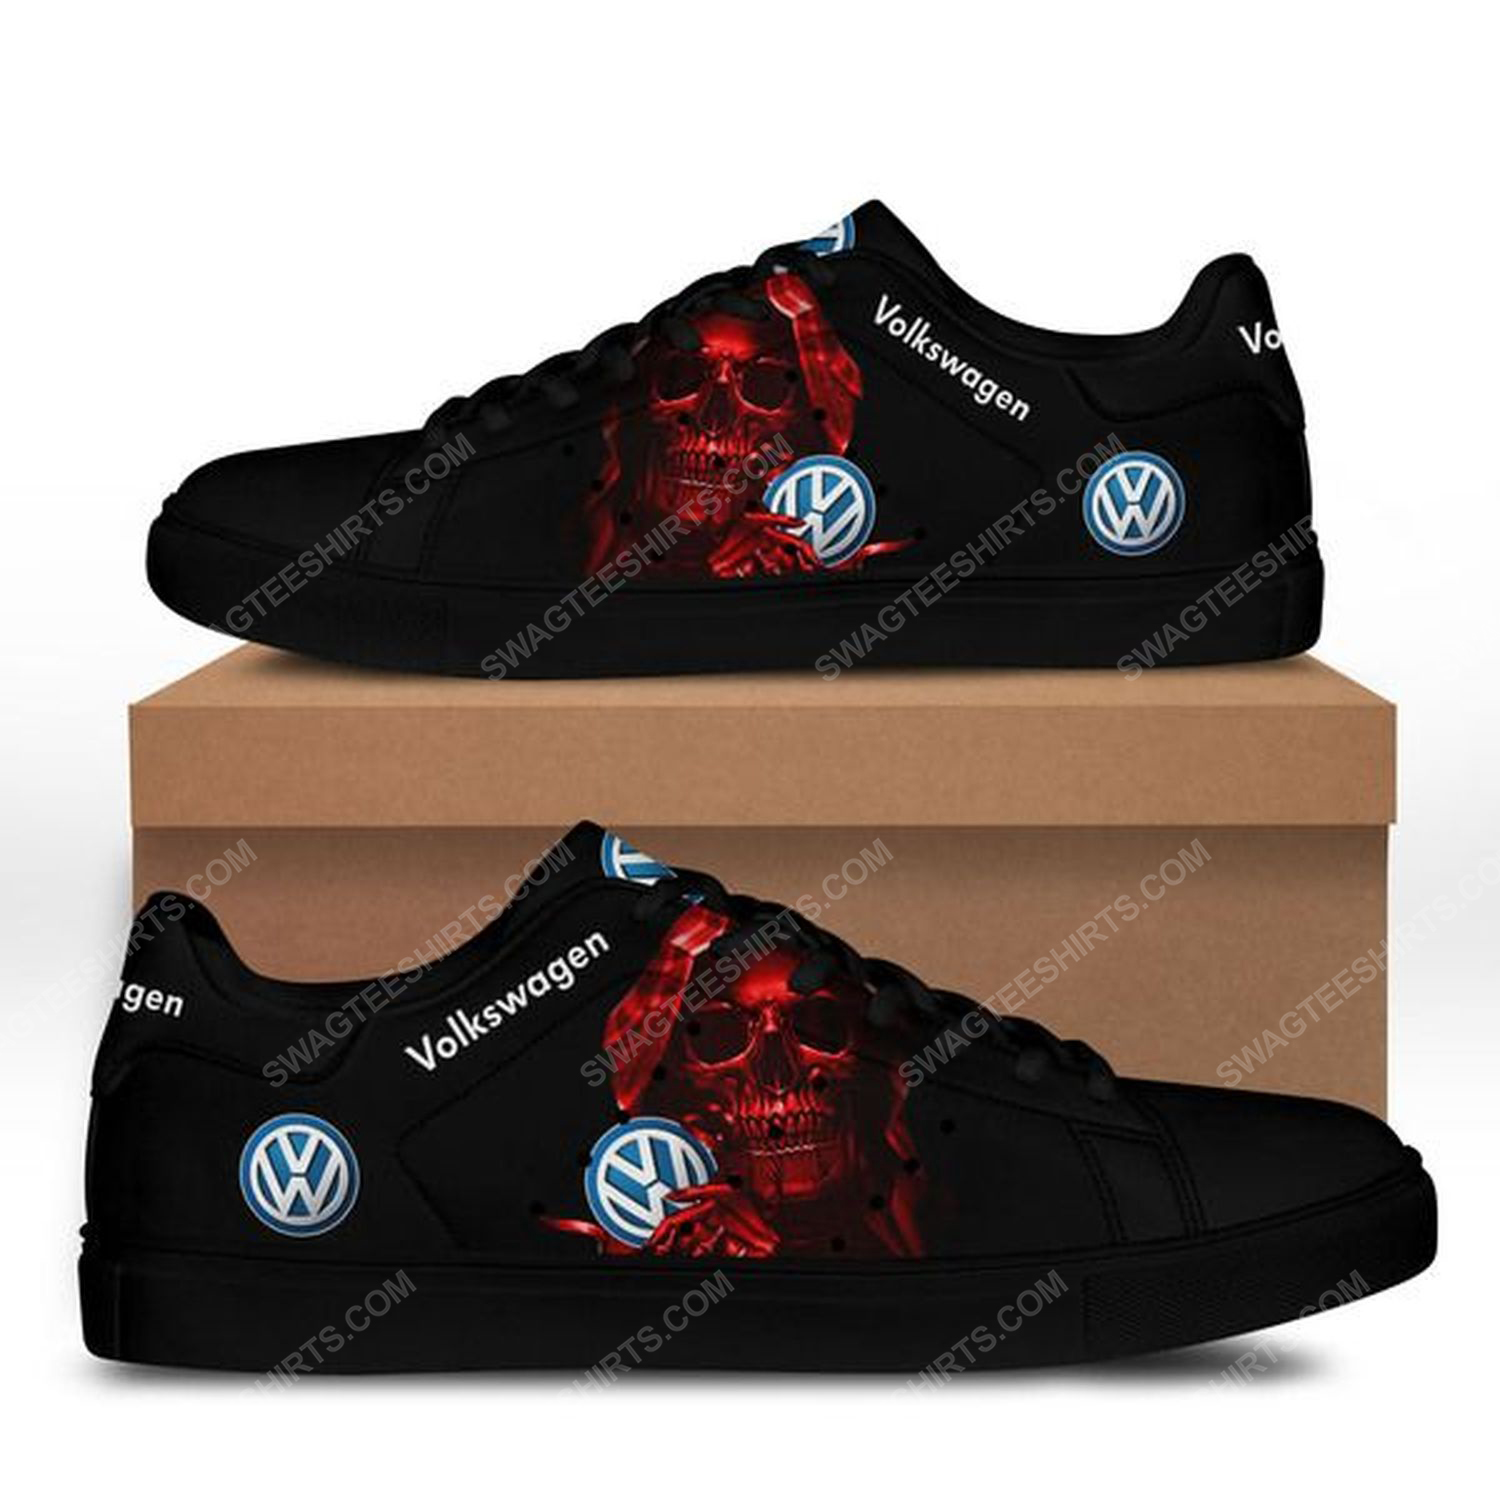 The red skull with volkswagen logo stan smith shoes - black 1